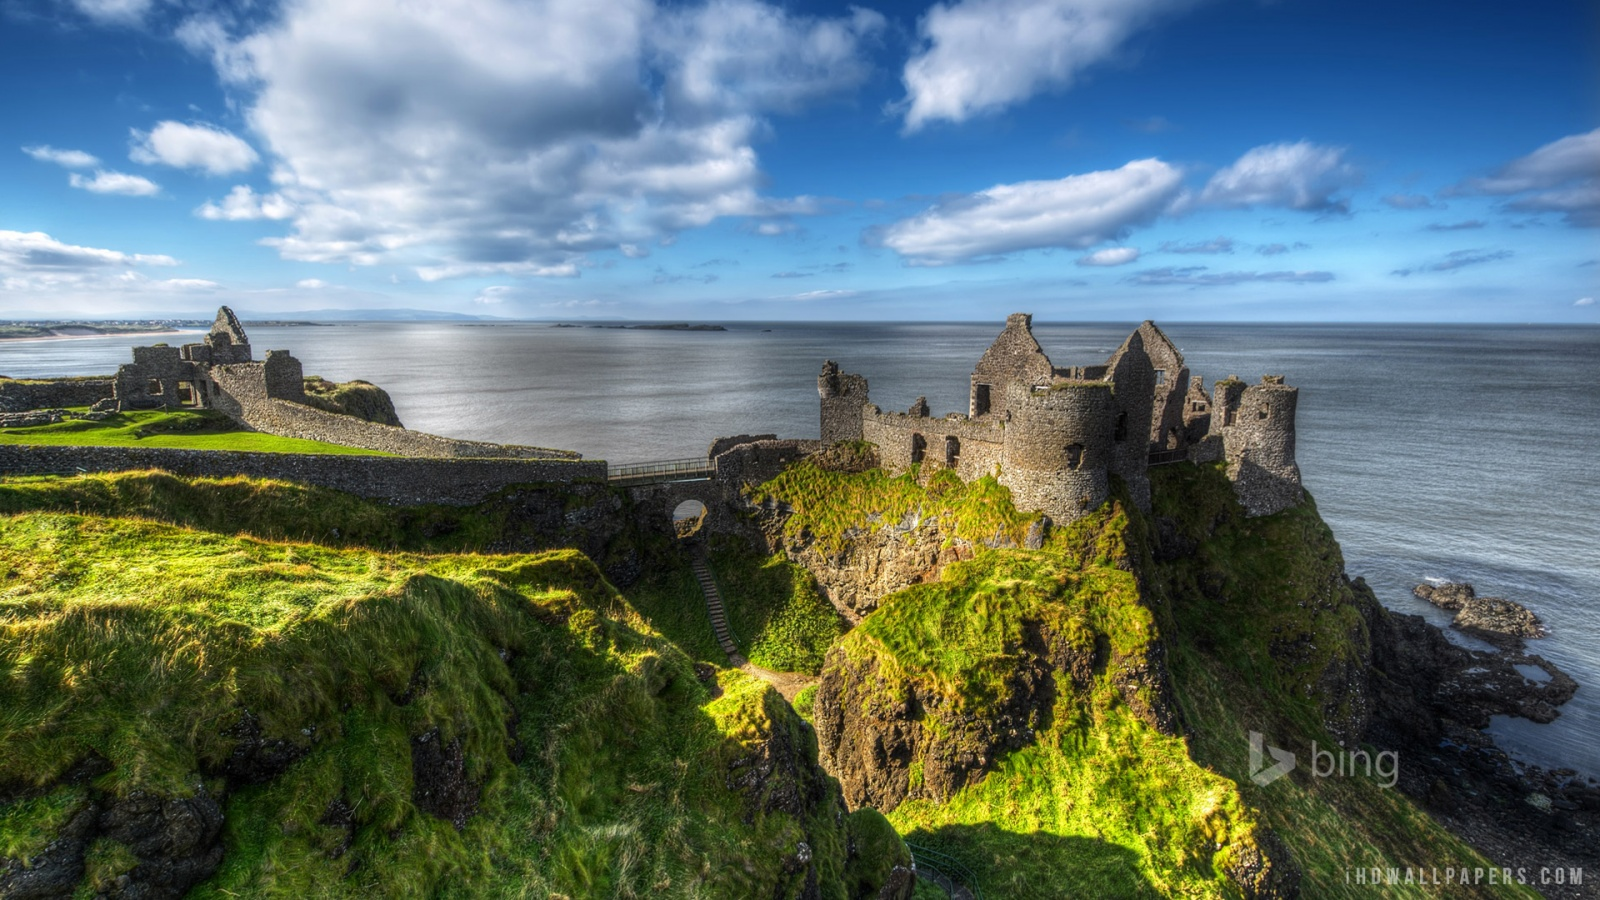 Download Ireland Wallpaper Widescreen Dunluce castle county antrim 1600x900